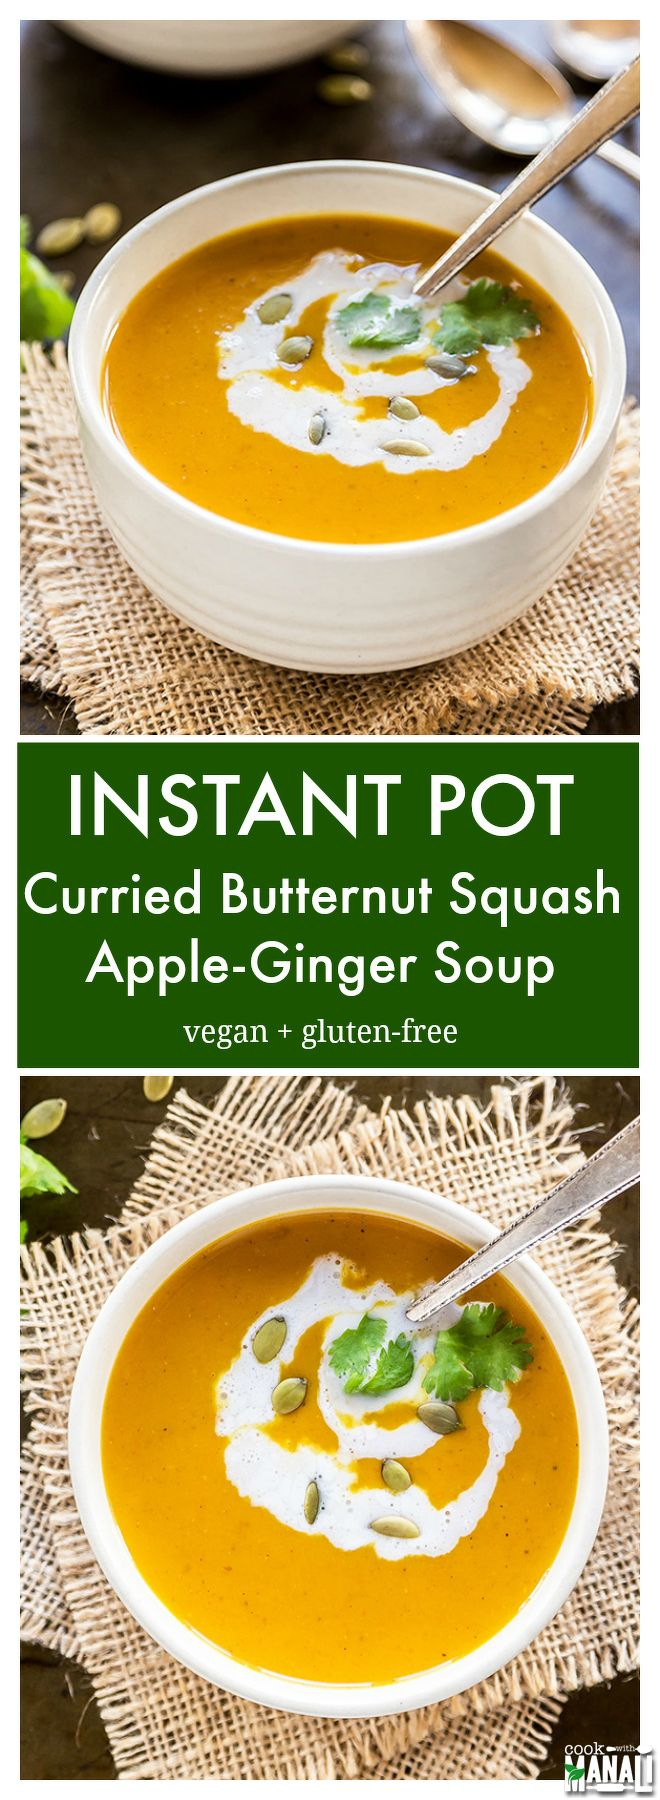 Curried Butternut Squash Apple & Ginger Soup made in the Instant Pot! Packed with warm flavors, this soup would also be great for Thanksgiving! Vegan & gluten-free. Find the recipe on www.cookwithmanali.com